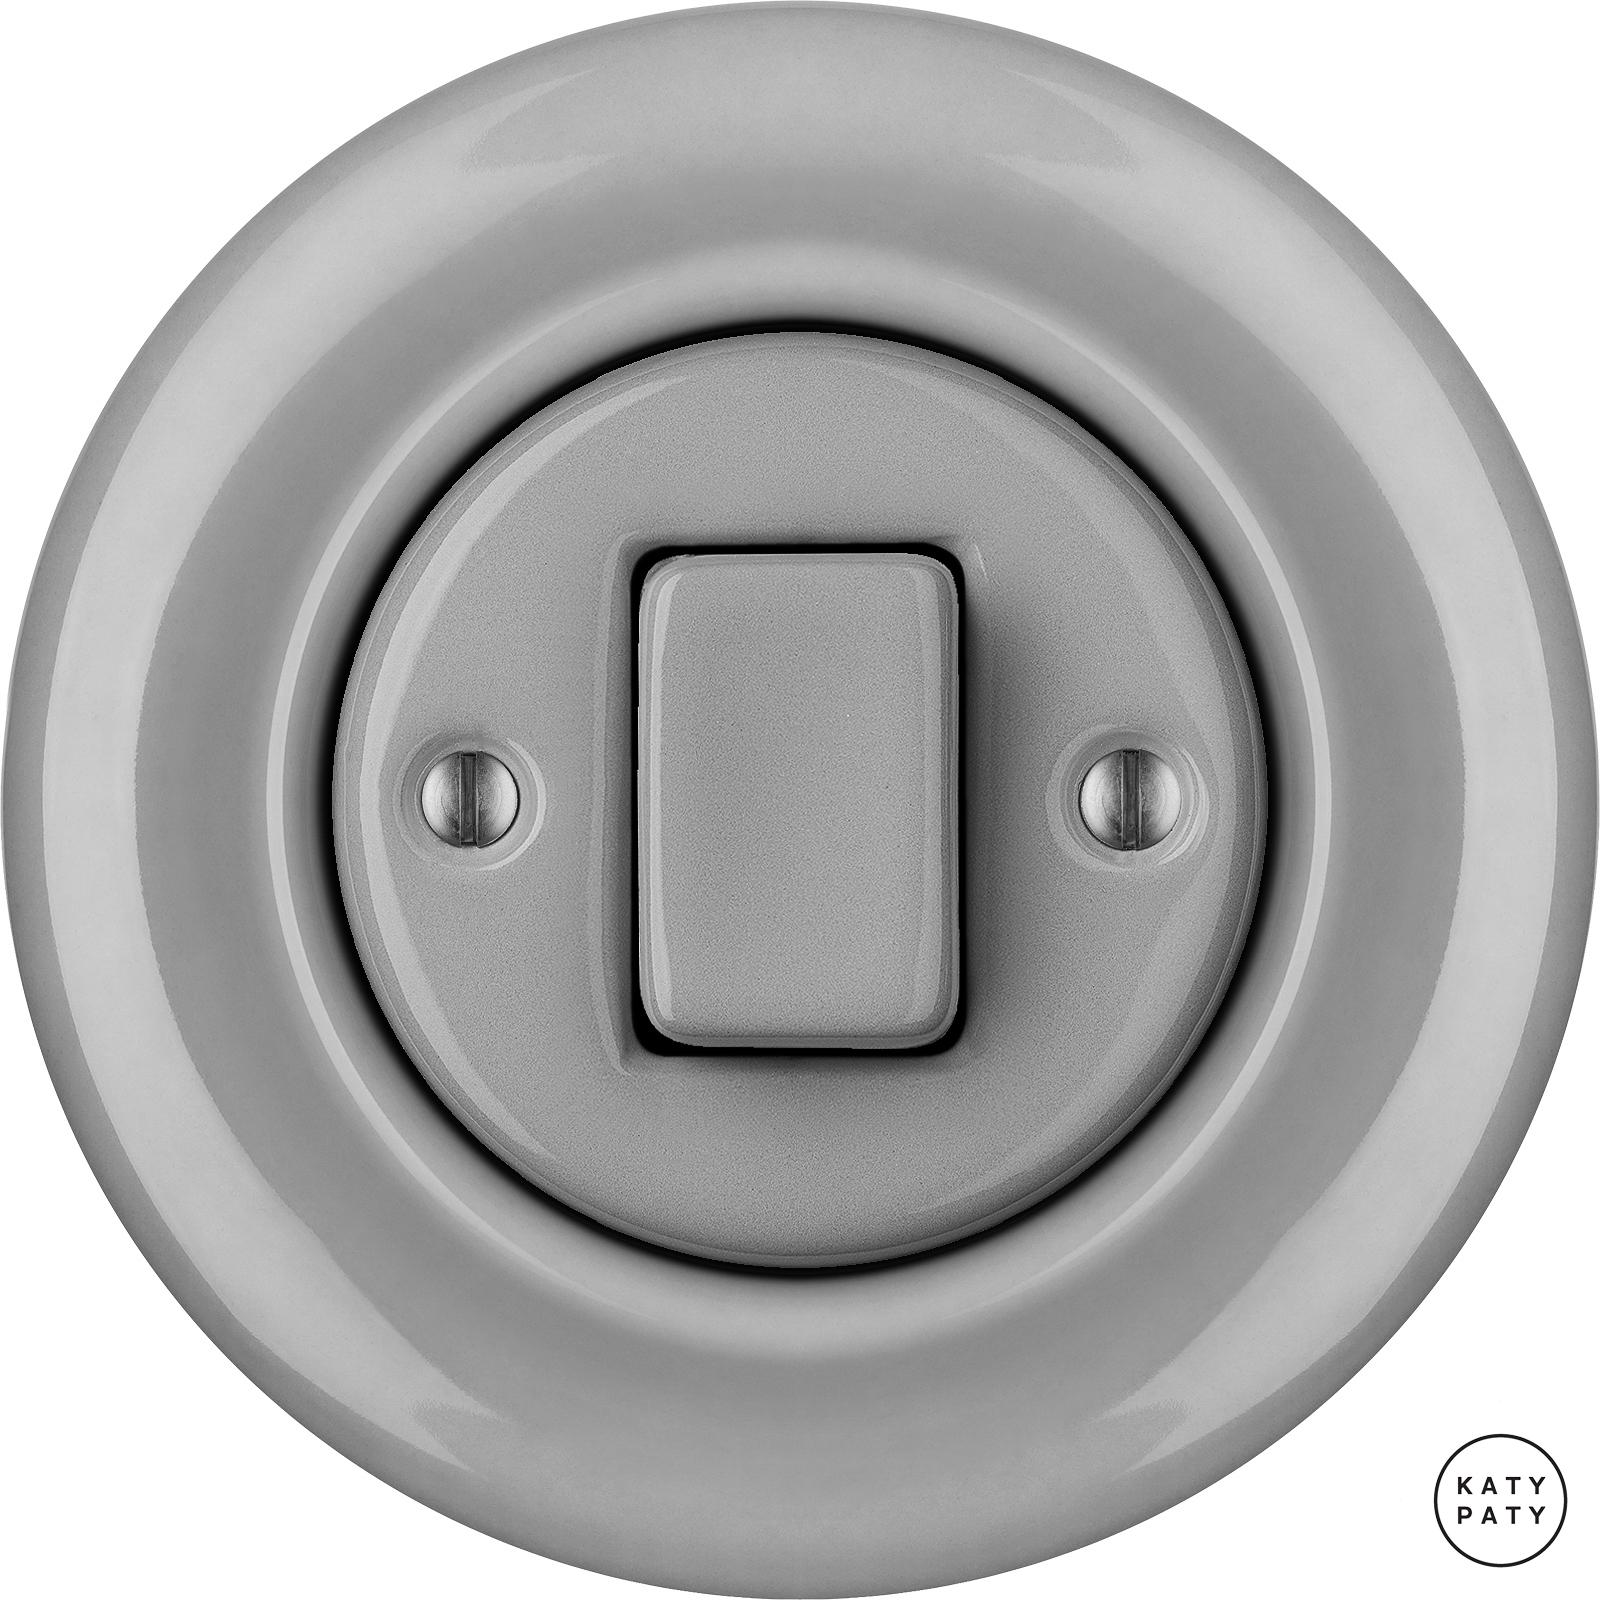 Porcelain switches - 1 gang - FAT ()  - CANA | Katy Paty